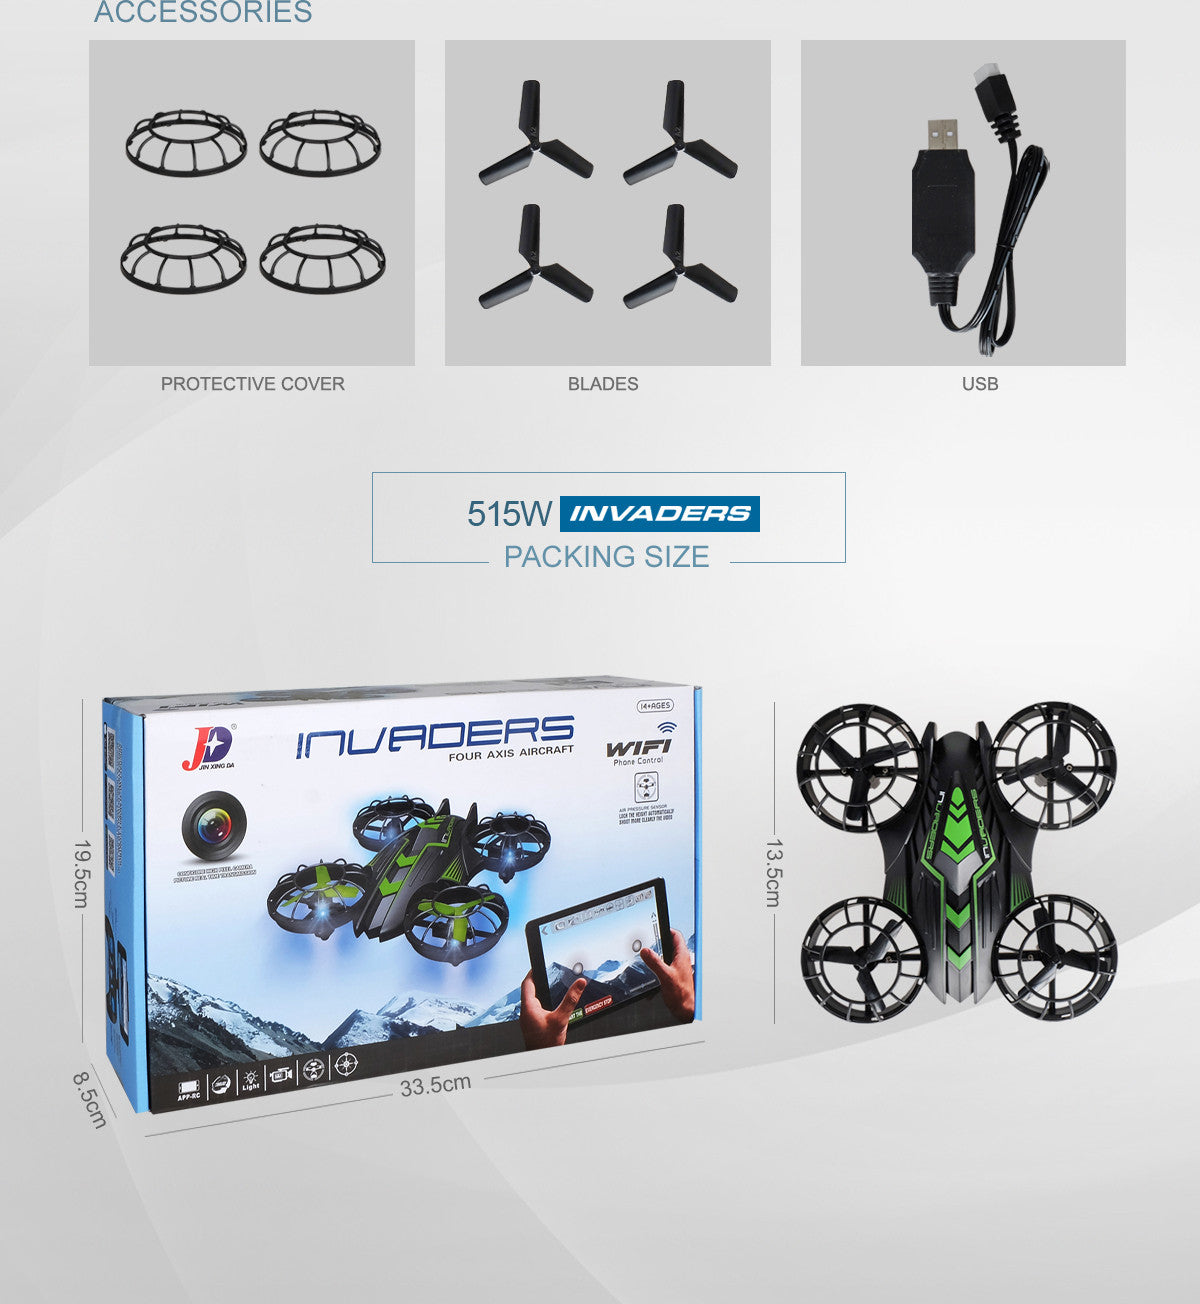 Invaders 515W Mini RC Quadcopter